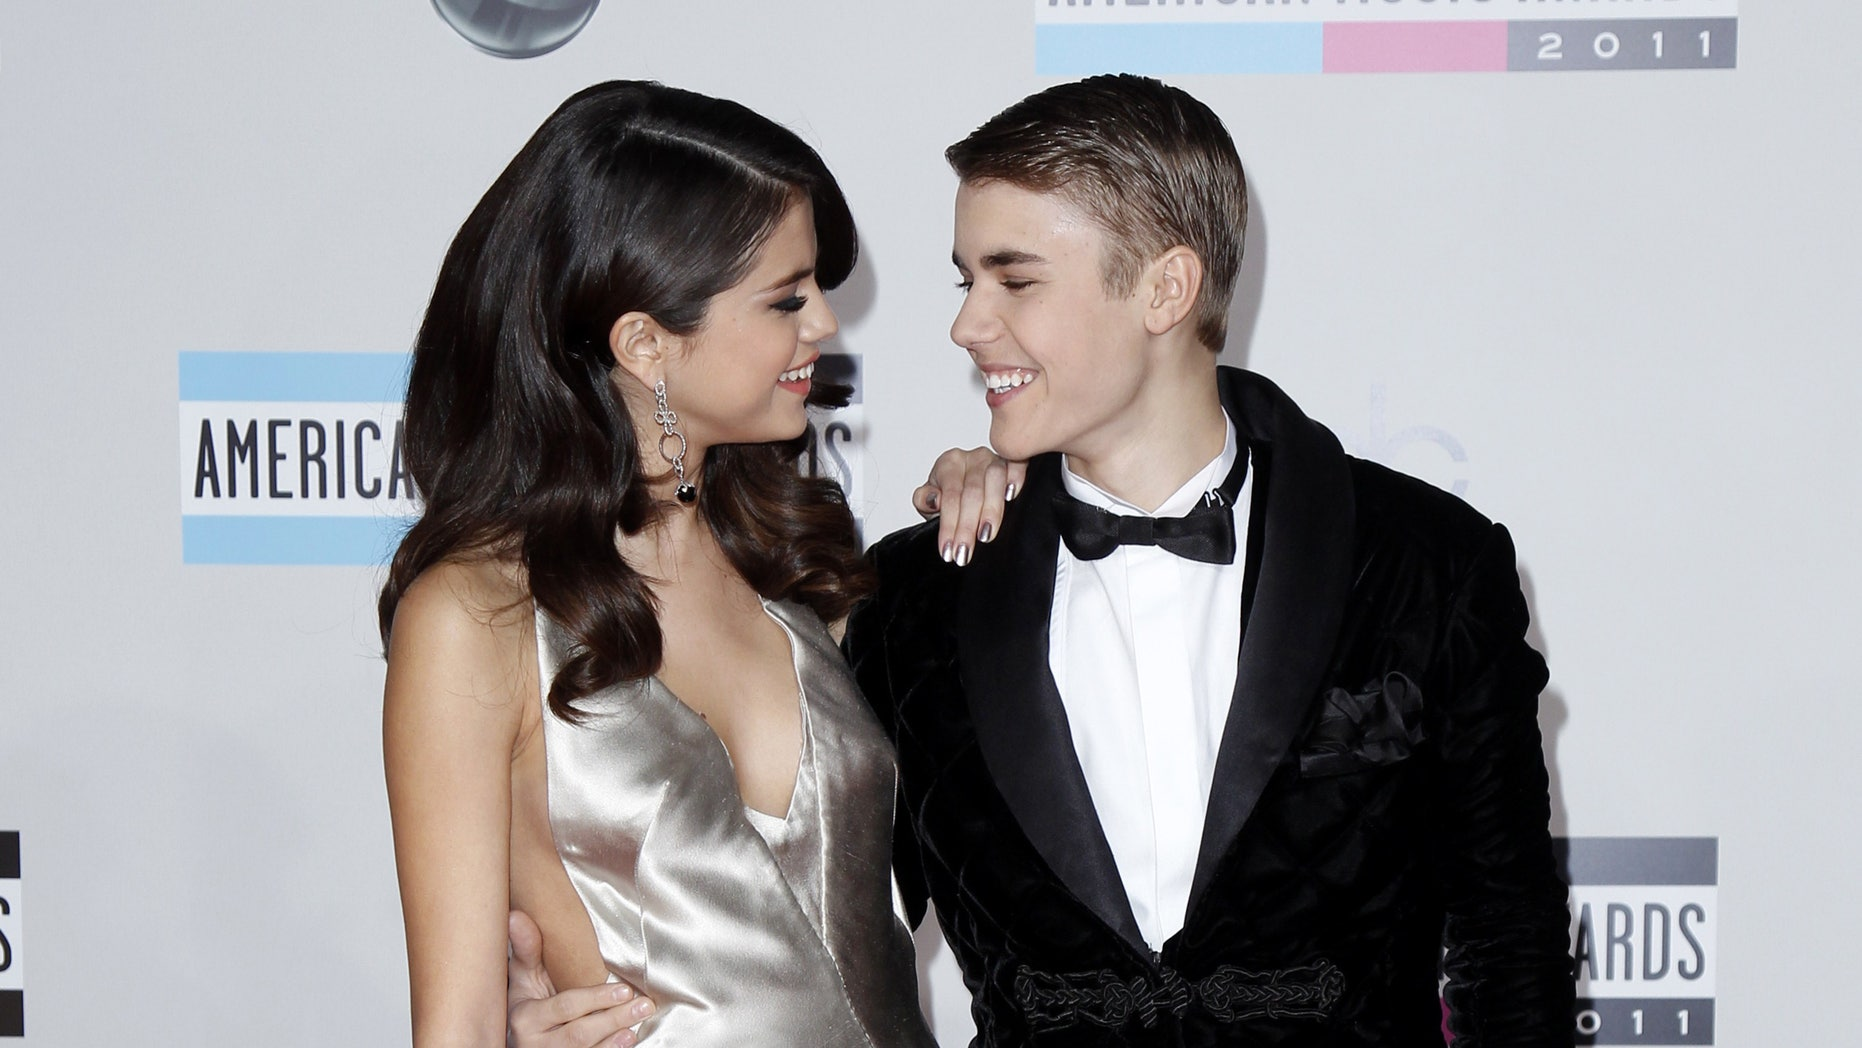 November 20, 2011. Justin Bieber and  Selena Gomez, arrive at the 2011 American Music Awards in Los Angeles.